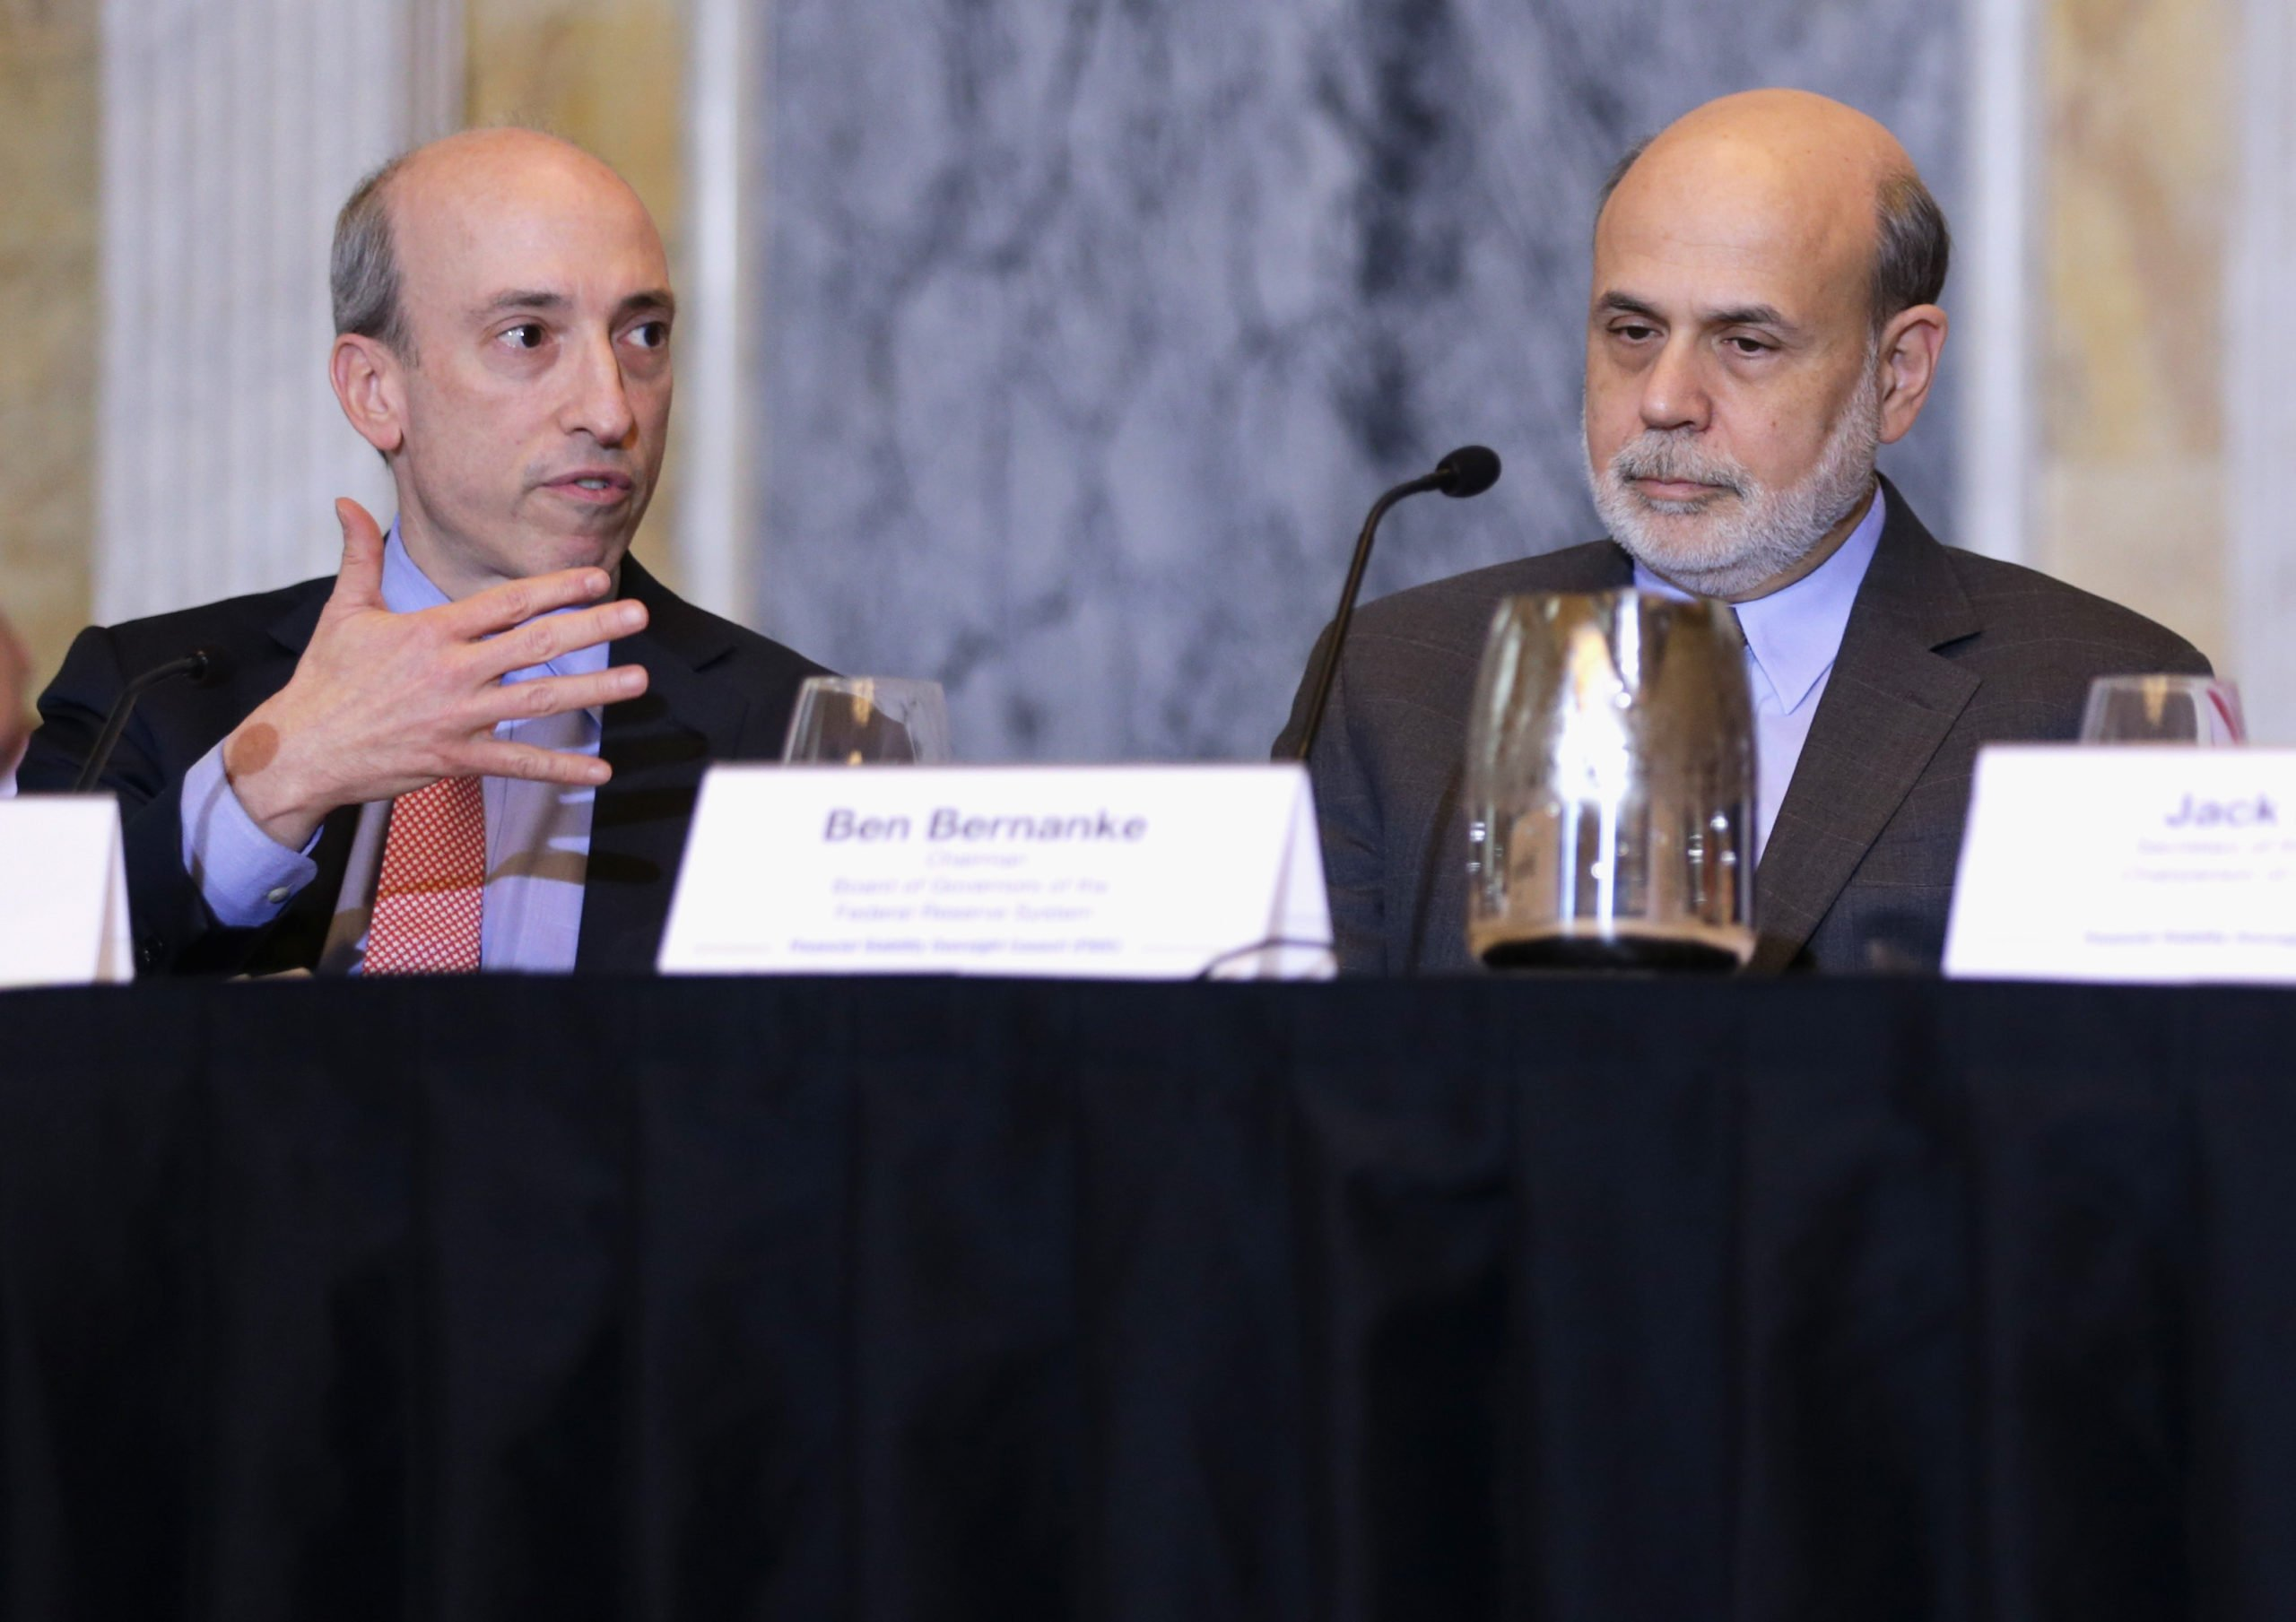 Gary Gensler speaks as former Federal Reserve Board chairman Ben Bernanke listens during a 2013 meeting at the Treasury Department in Washington, D.C. (Alex Wong/Getty Images)